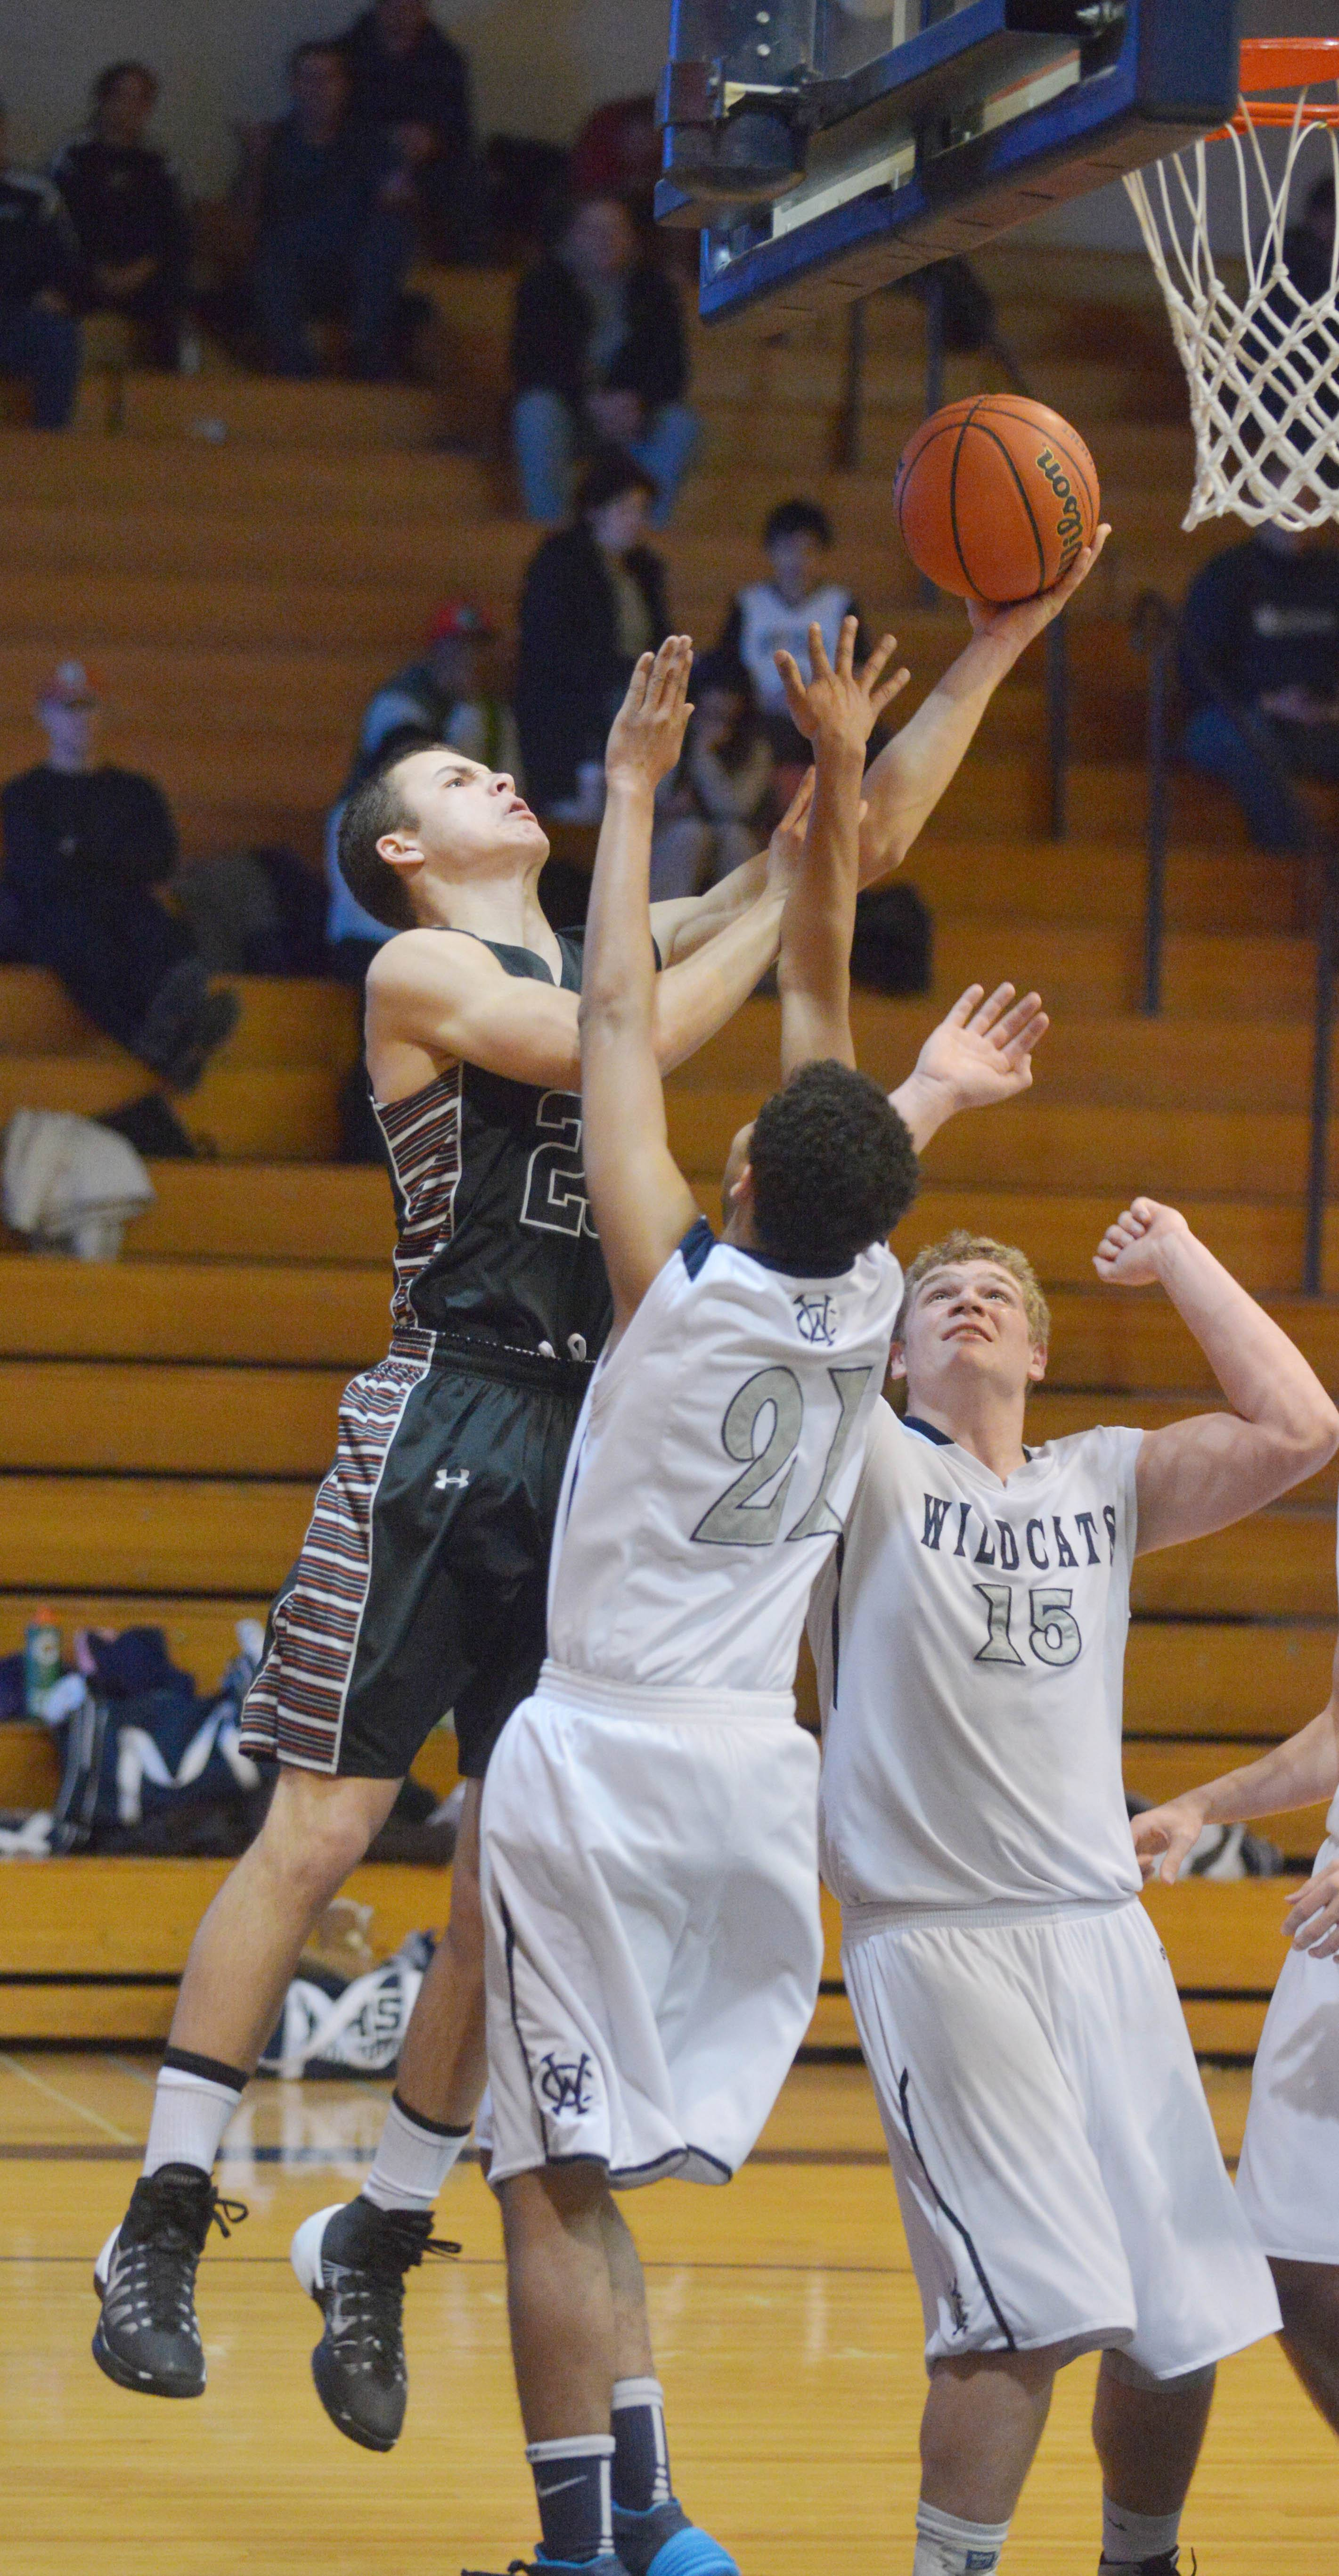 Kaneland hustles past West Chicago